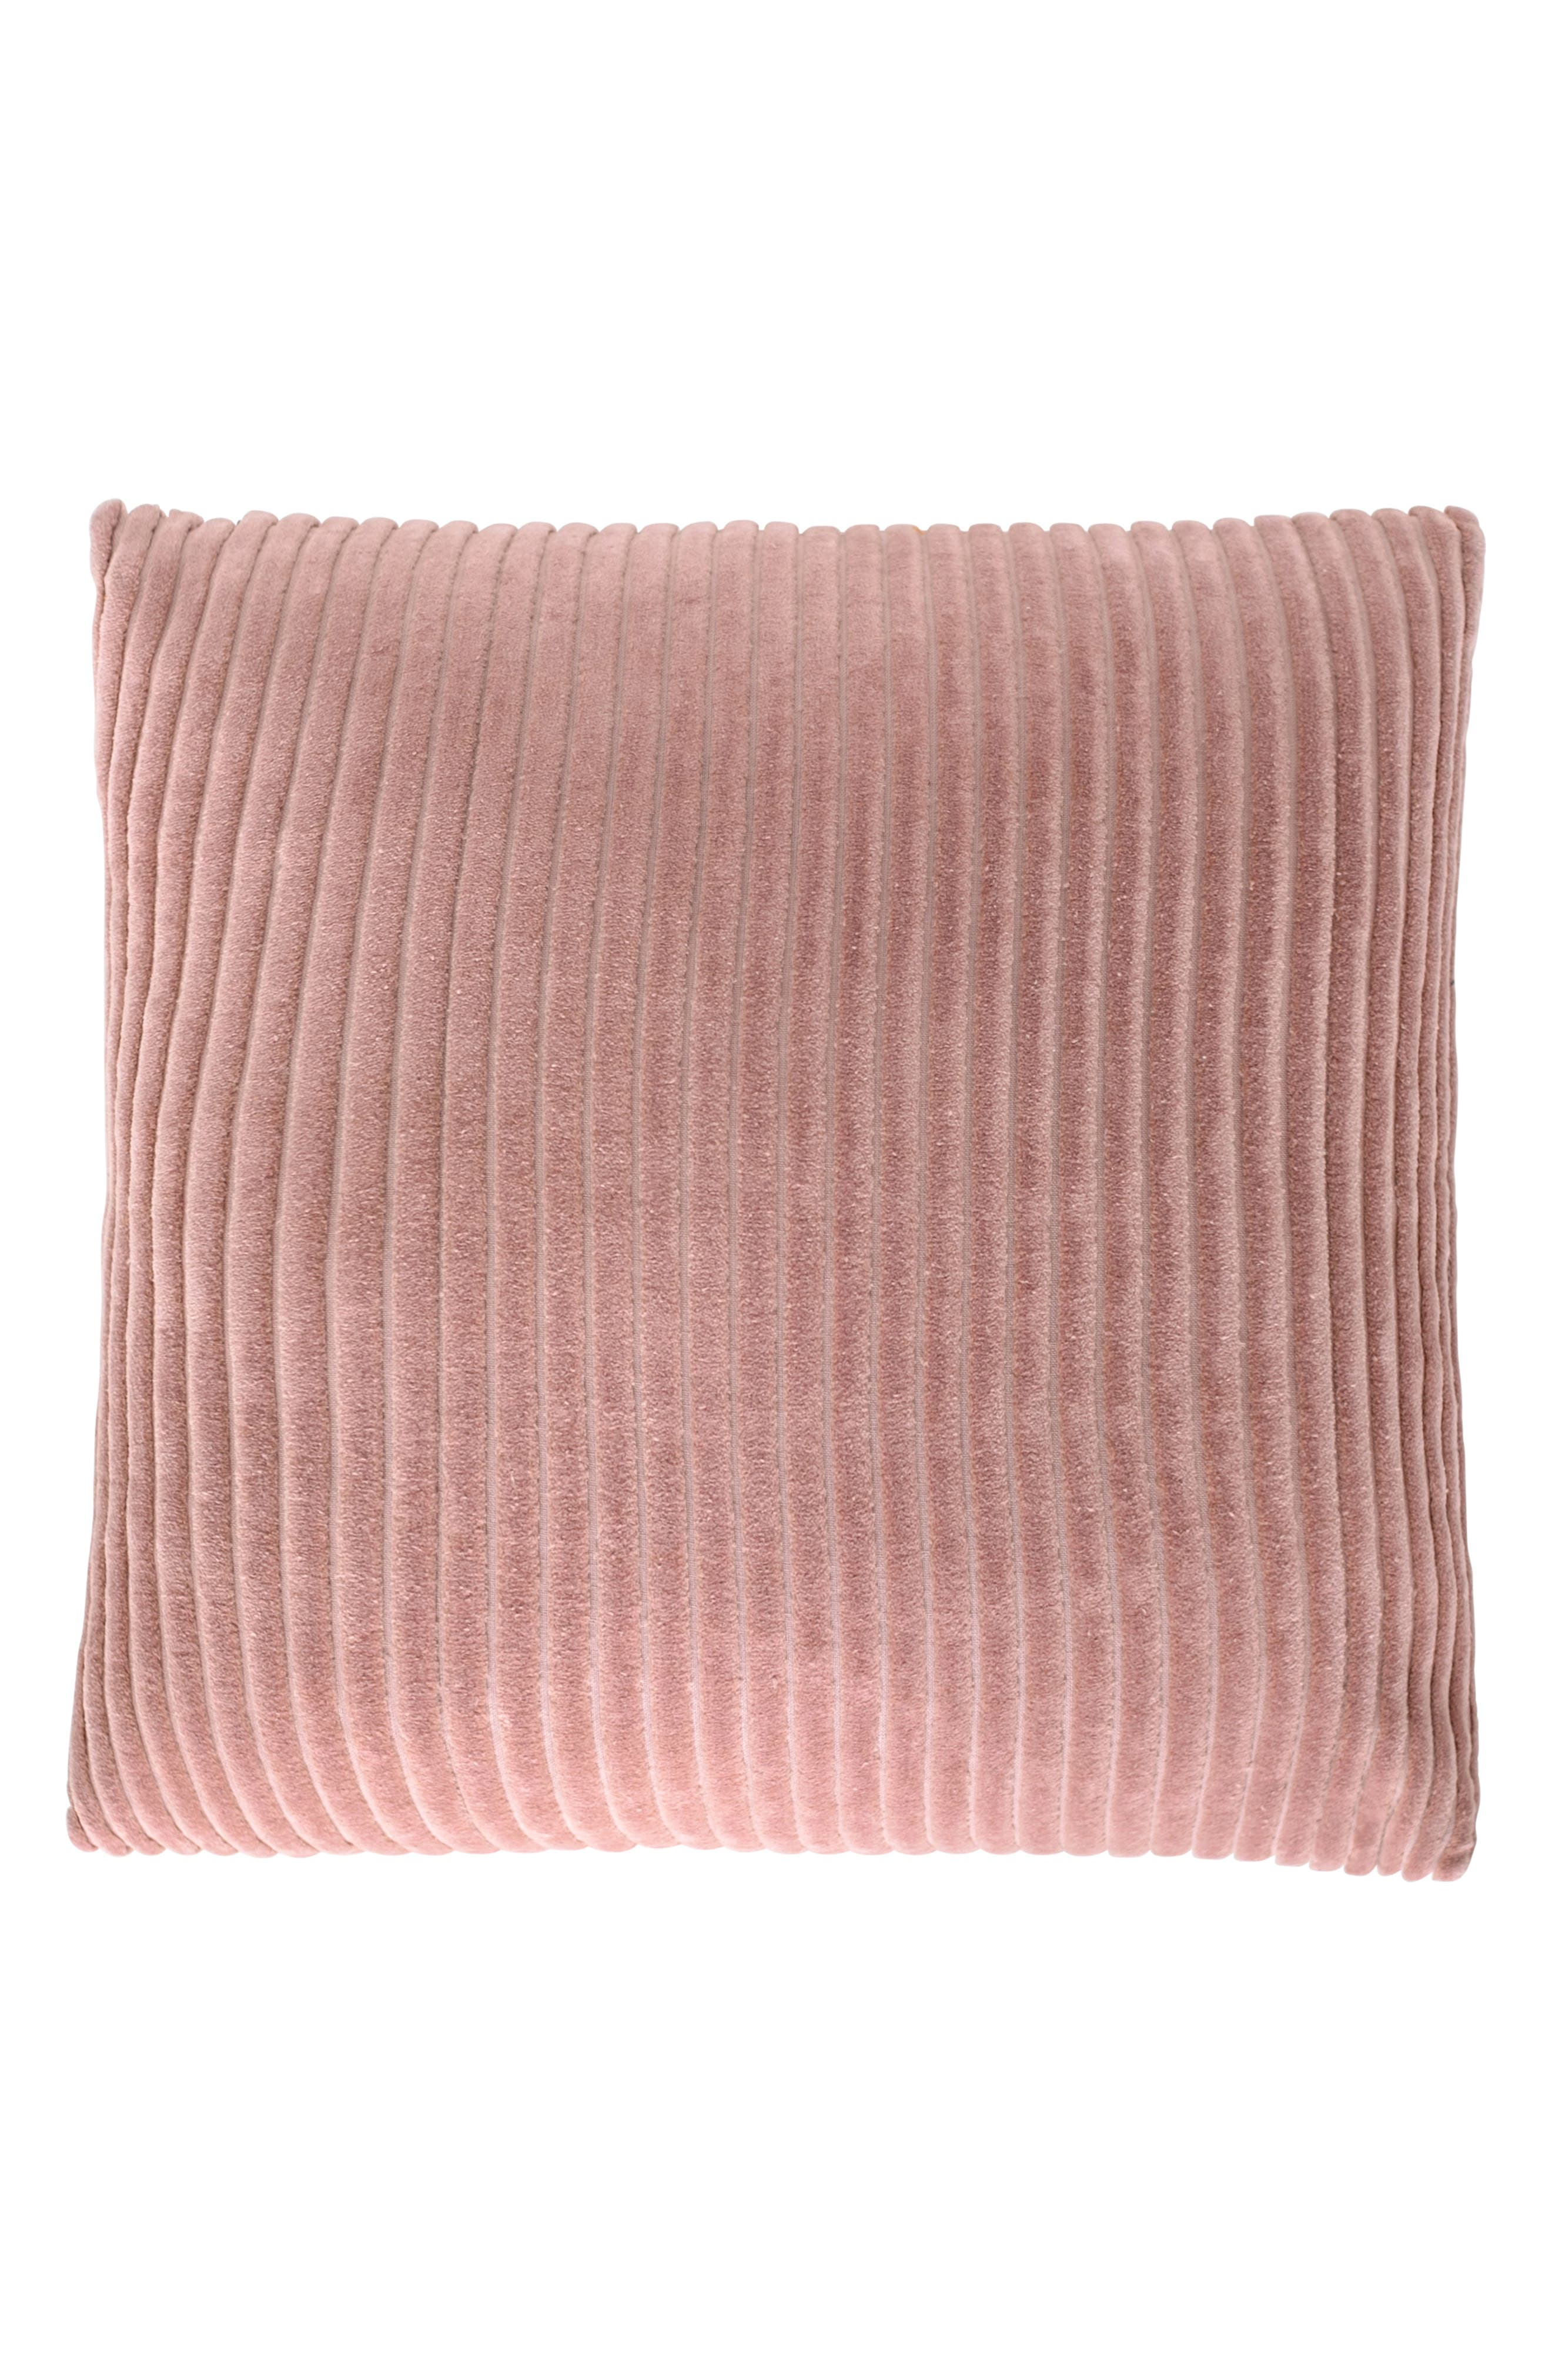 EADIE LIFESTYLE Ribbed Velvet Scatter Accent Pillow, Main, color, MUSK